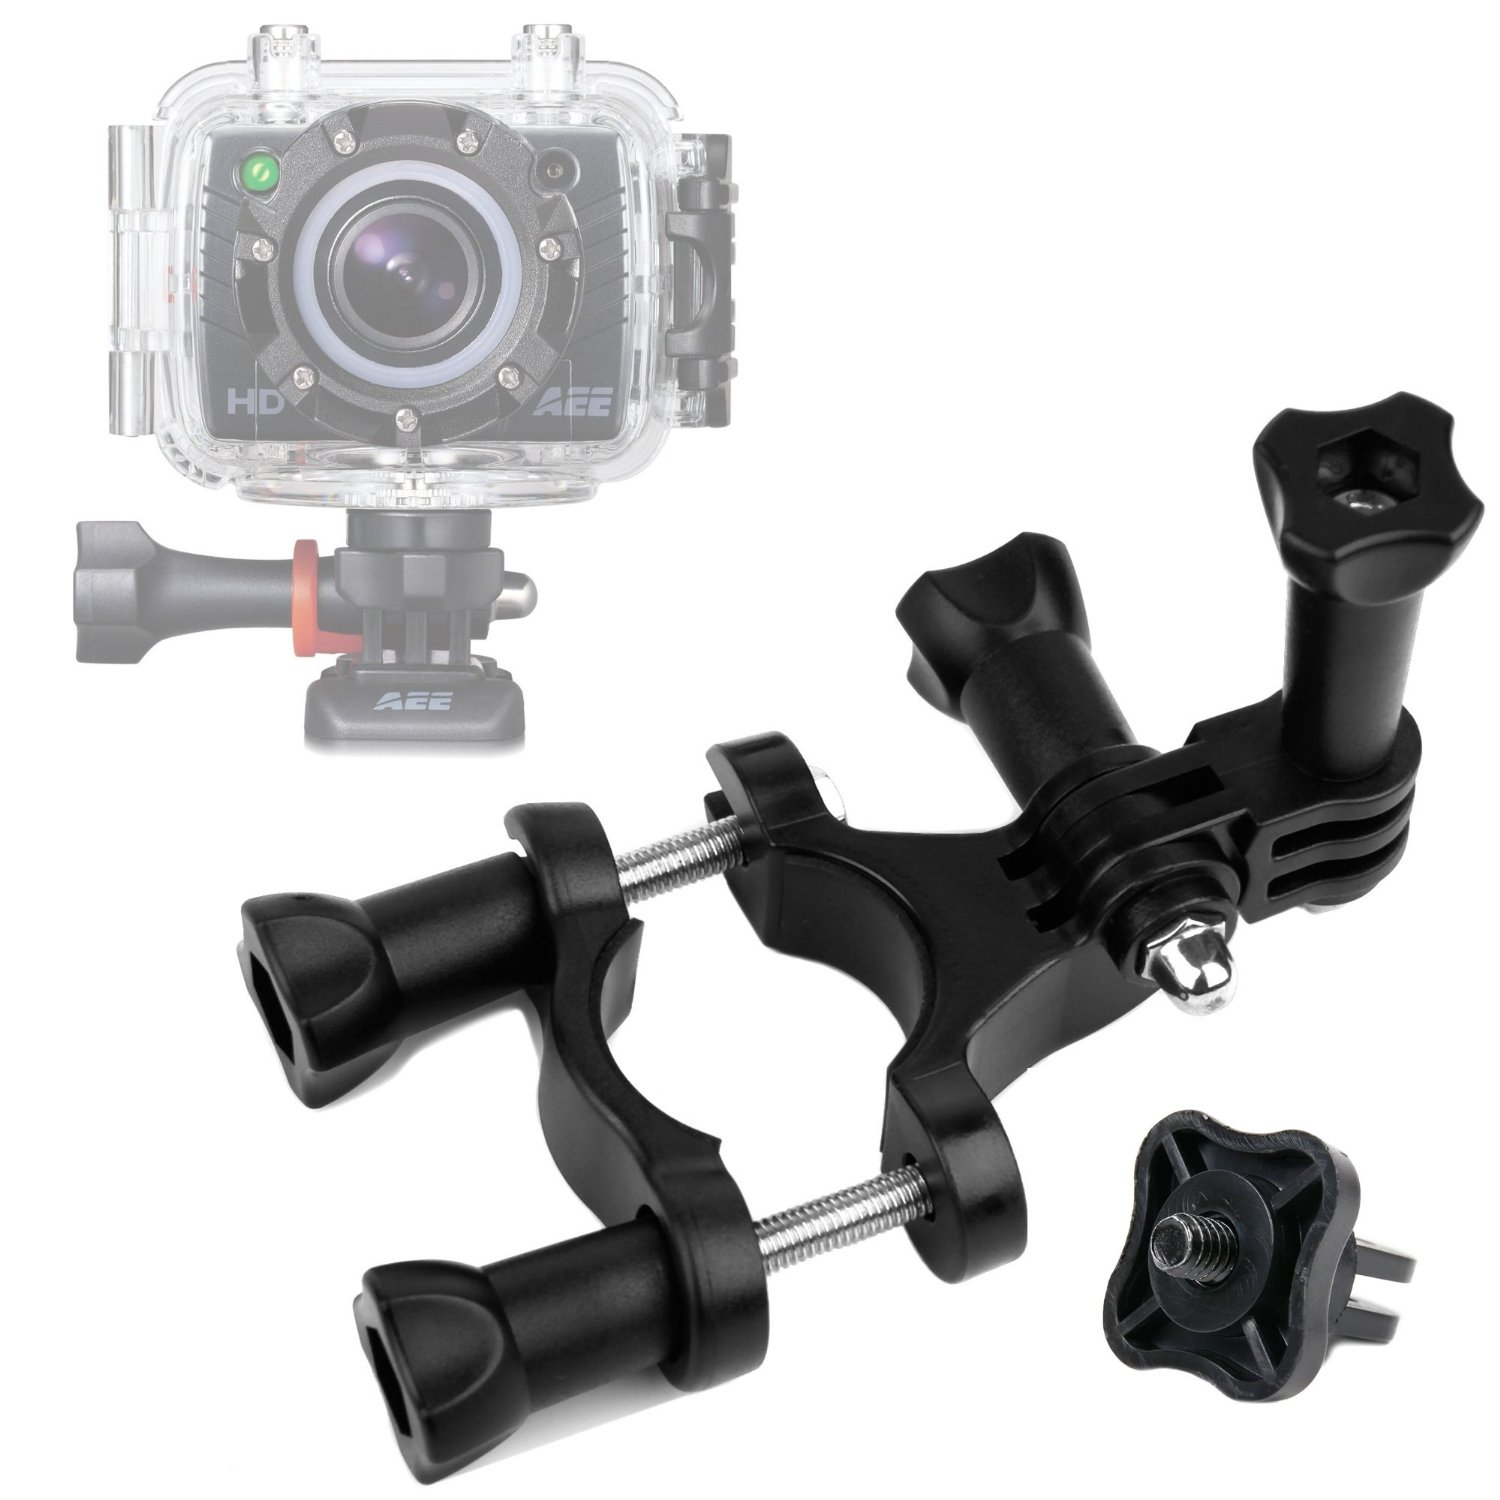 Cam ST4K AEE S70 PRO Action Camera Bundle Compatible with PNJ Cam AEE S50 PRO